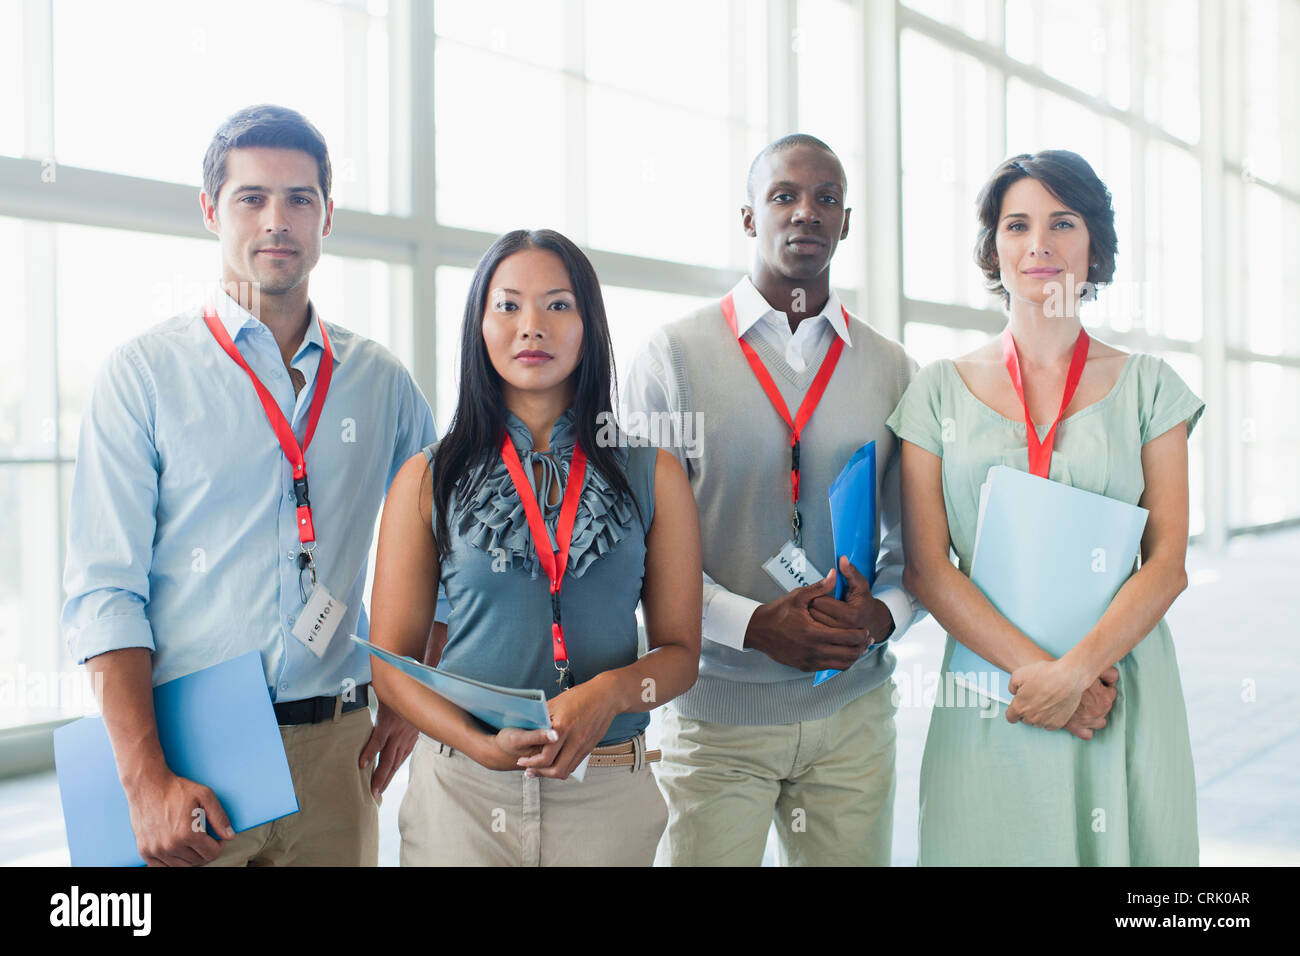 Business people wearing name tags - Stock Image